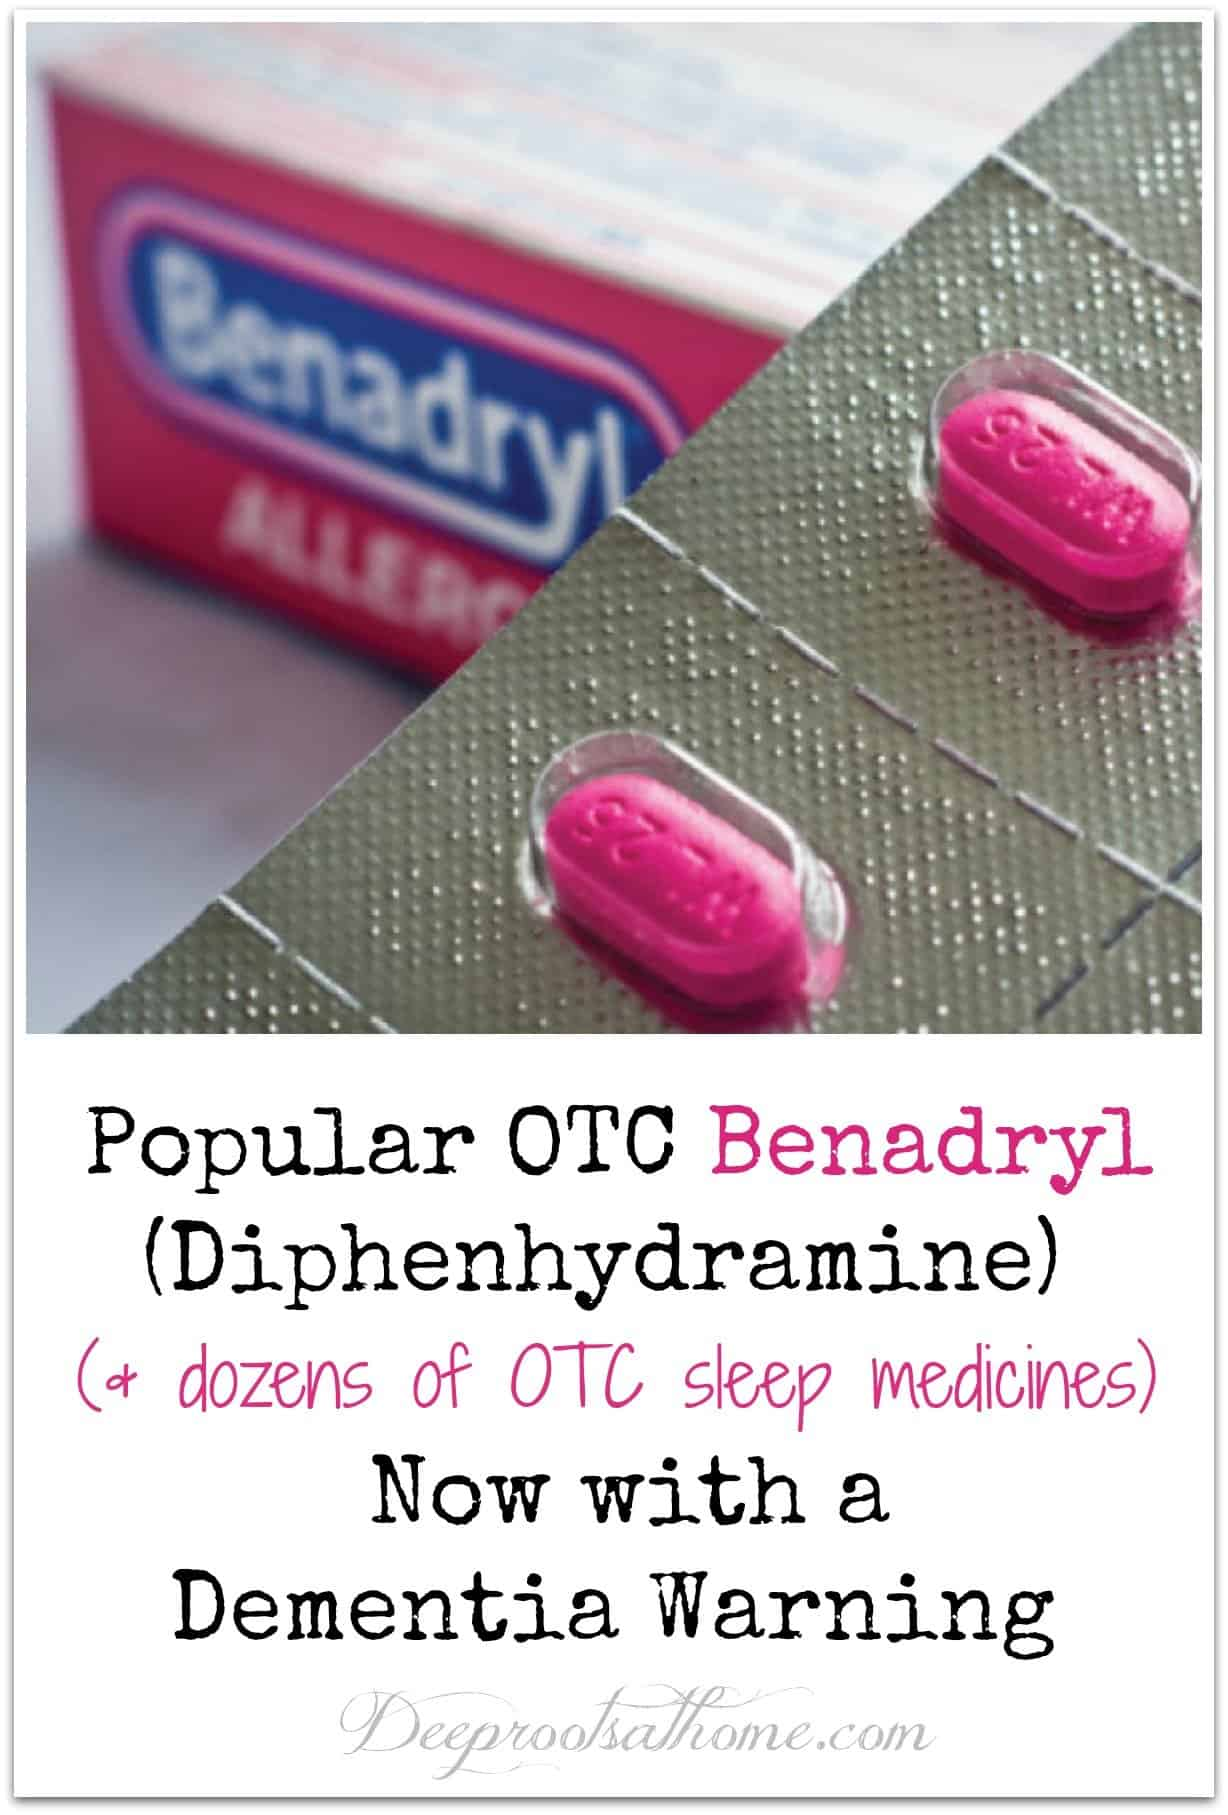 Popular OTC Benadryl -Diphenhydramine- Now with a Dementia Warning. Pink caplets